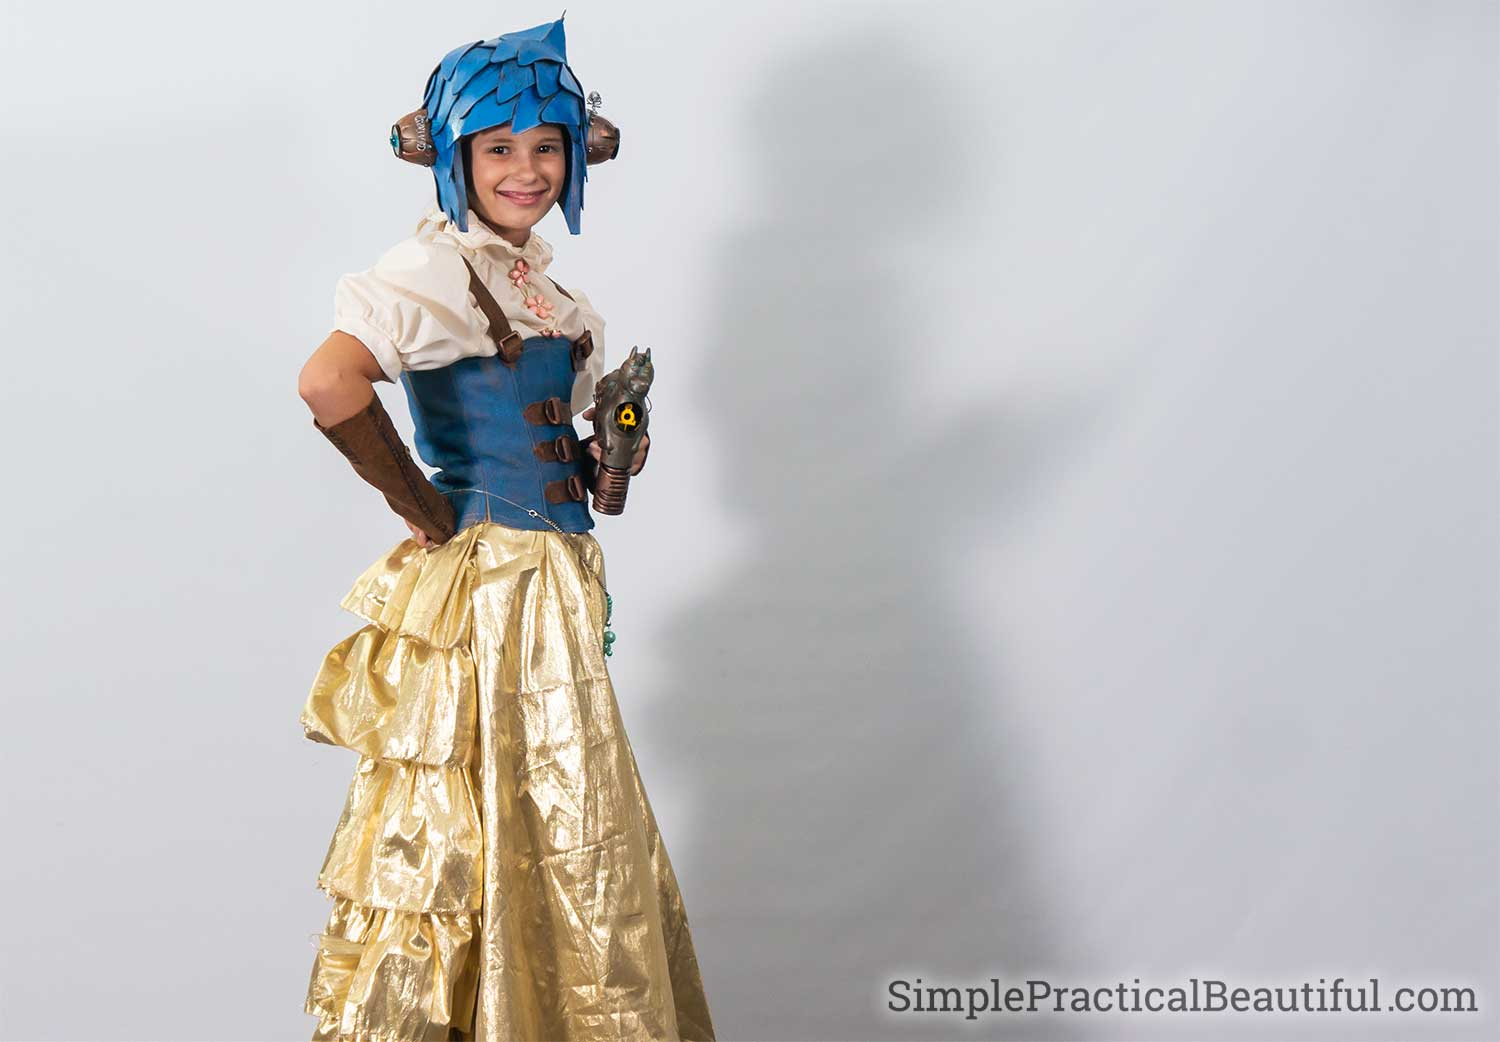 Cosplay costume for Inside Out character Joy in steampunk